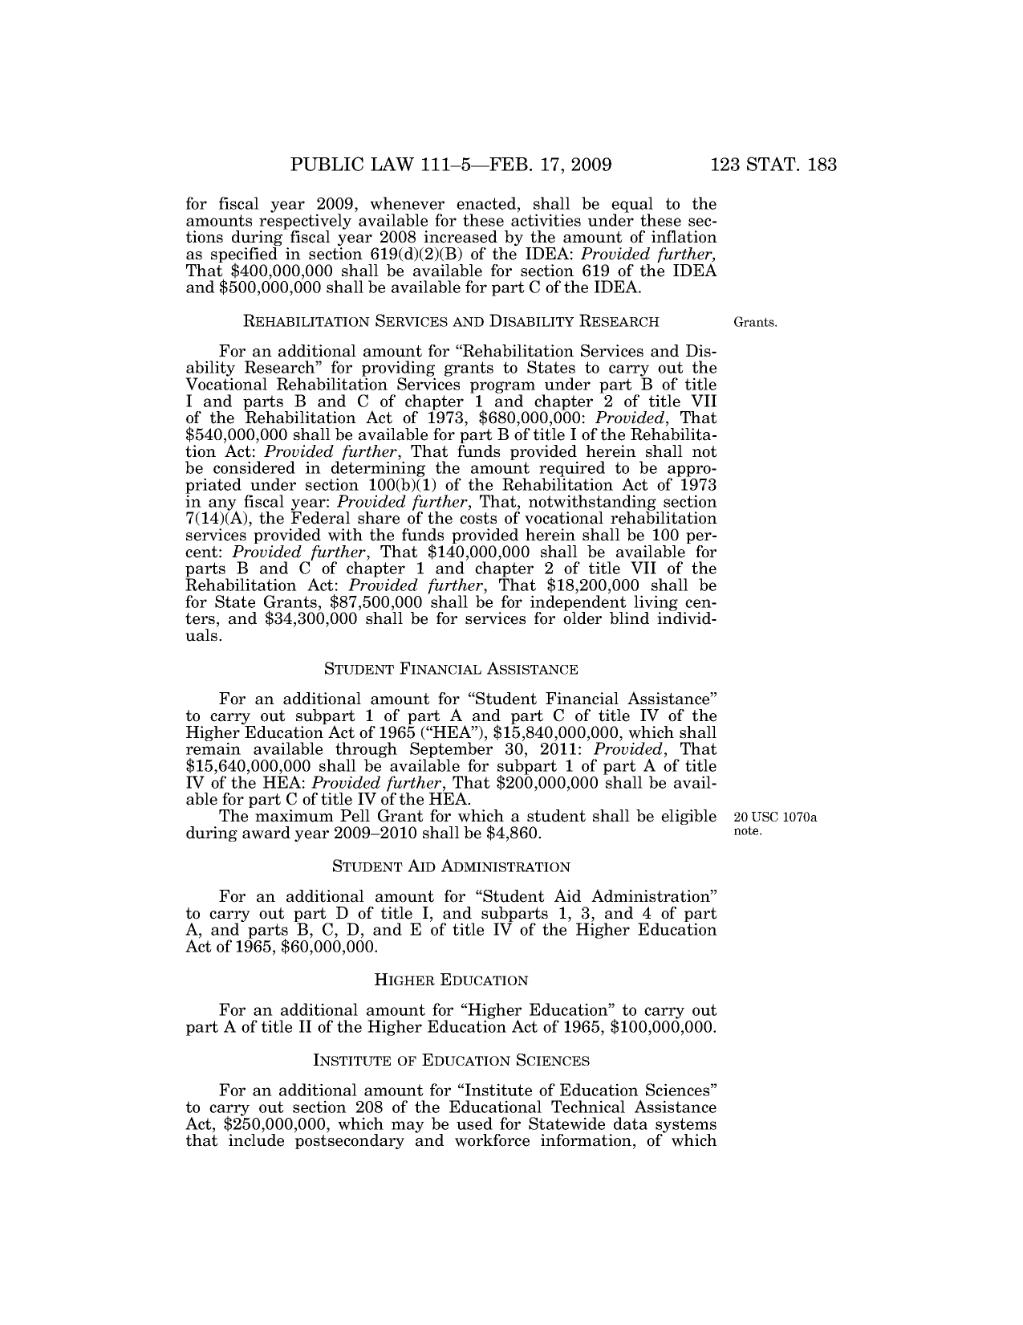 Page:United States Statutes at Large Volume 123 djvu/203